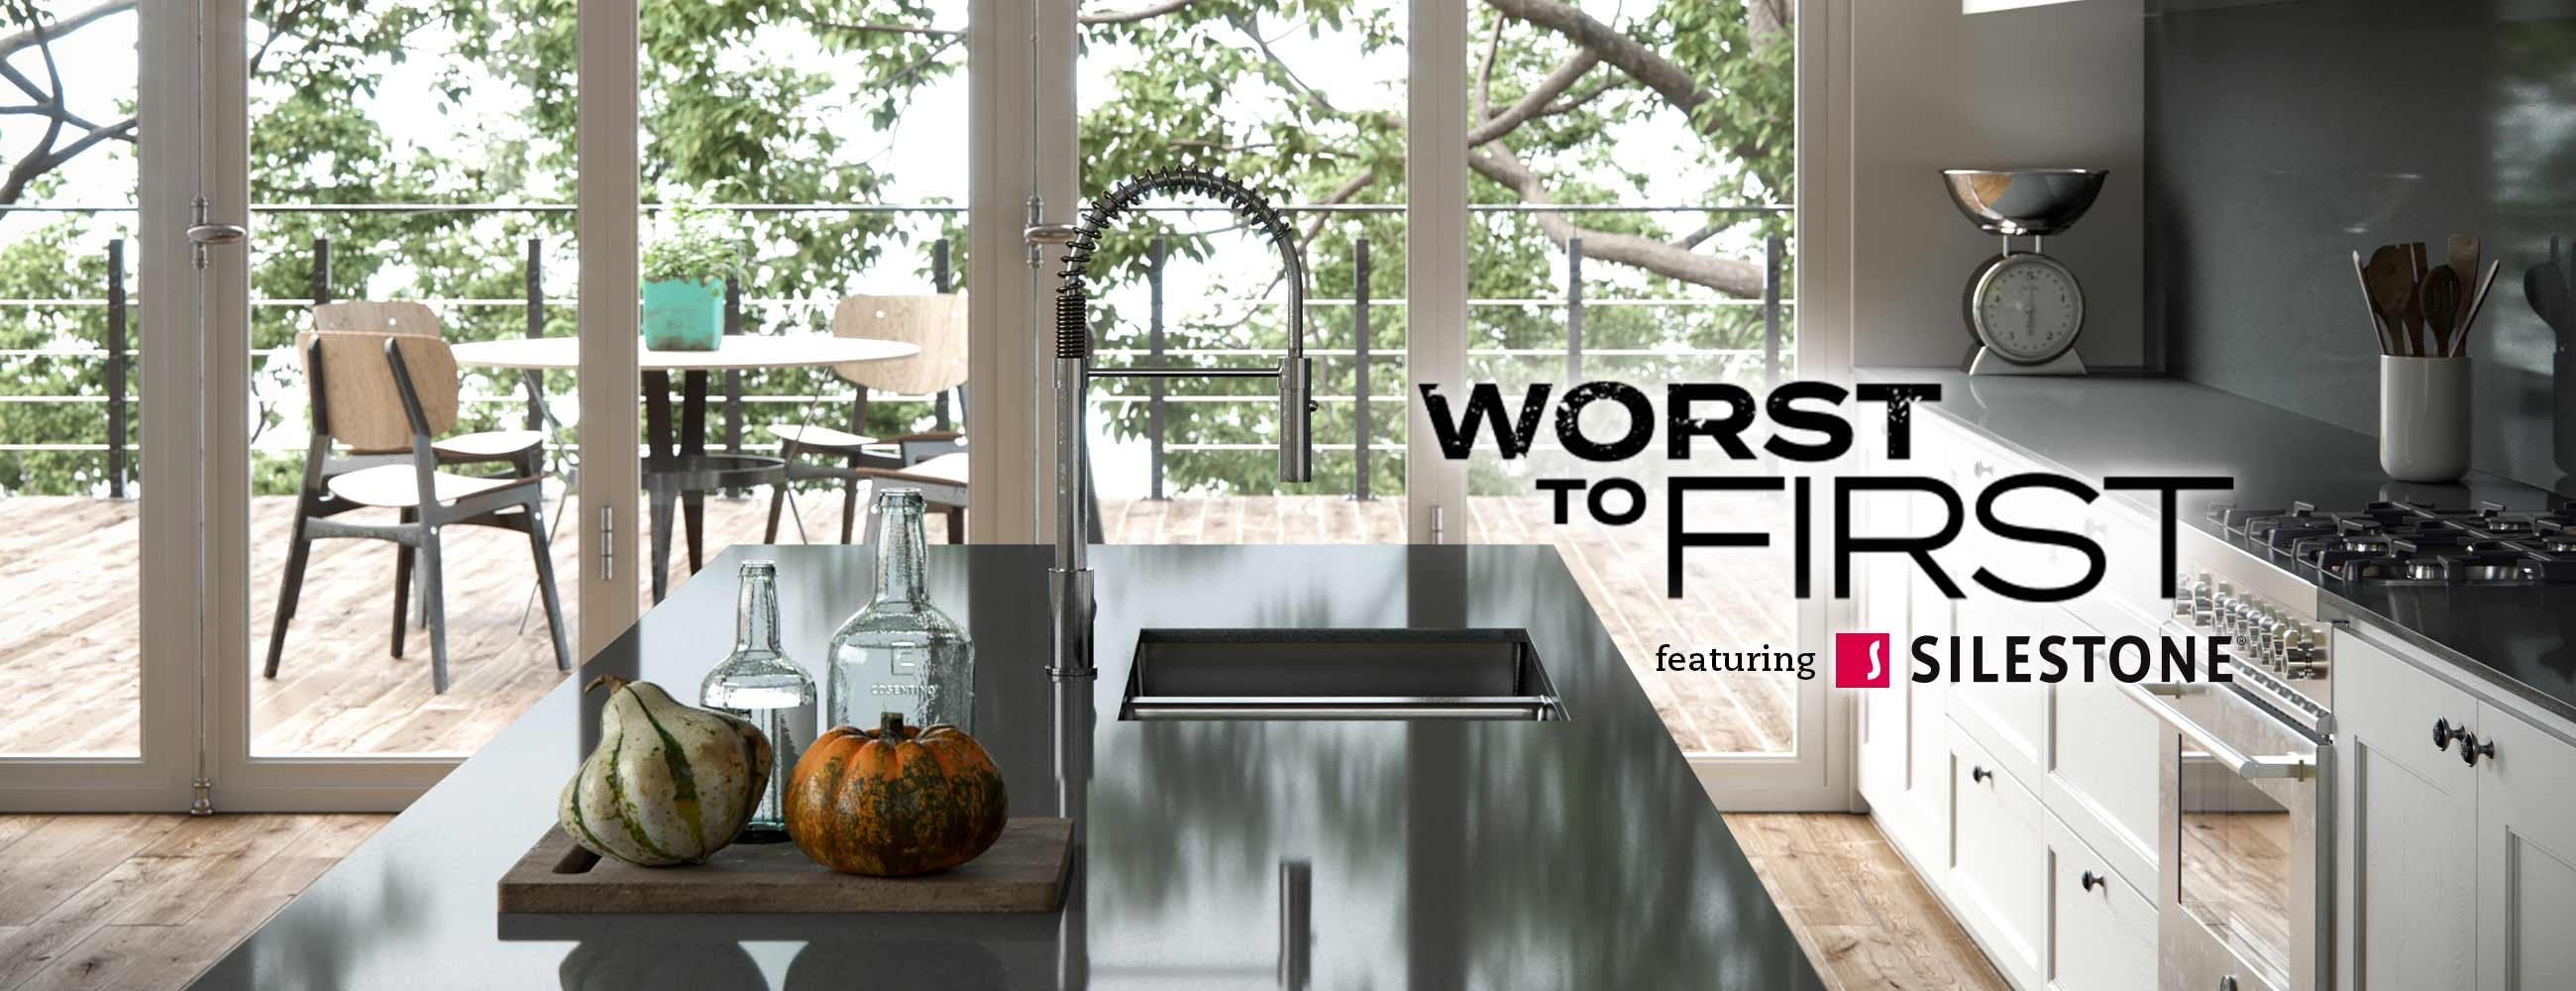 Worst to first - HGTV Canada